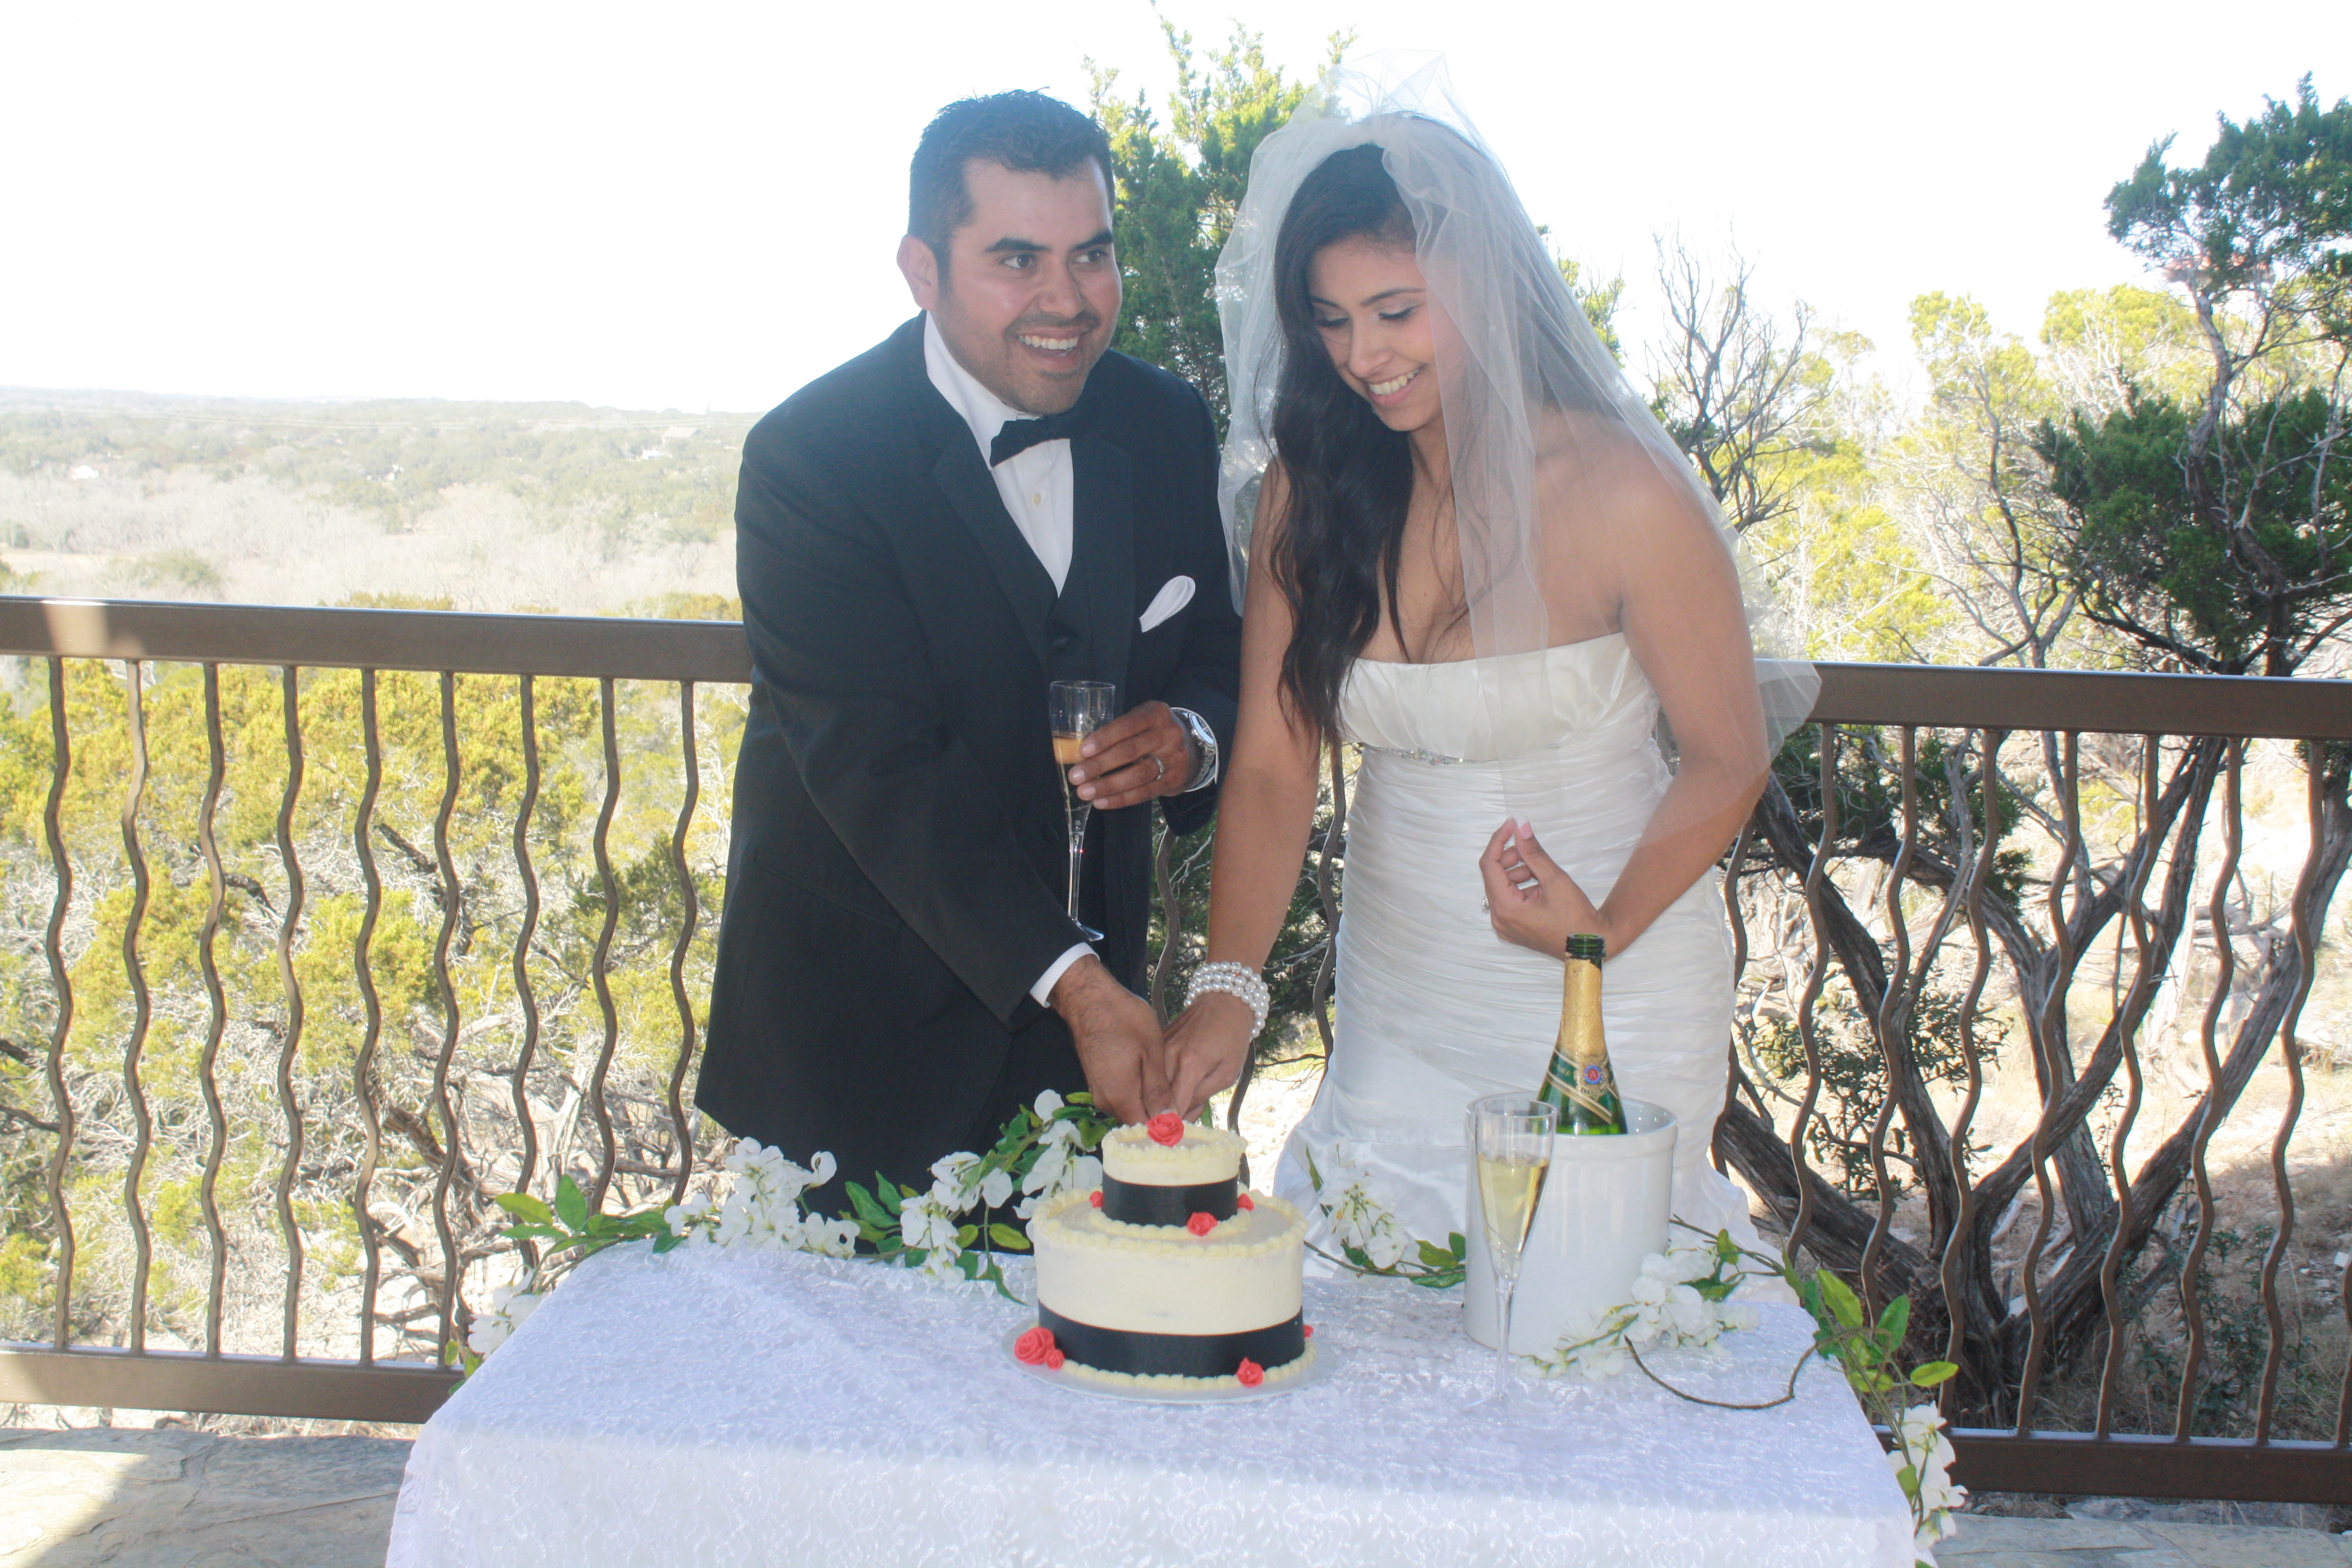 Small weddings in san antonio - Our Elopement Small Wedding Packages Are Designed To Give Couples Everything They Need For A Small Wedding At Affordable Picturesque Locations From San